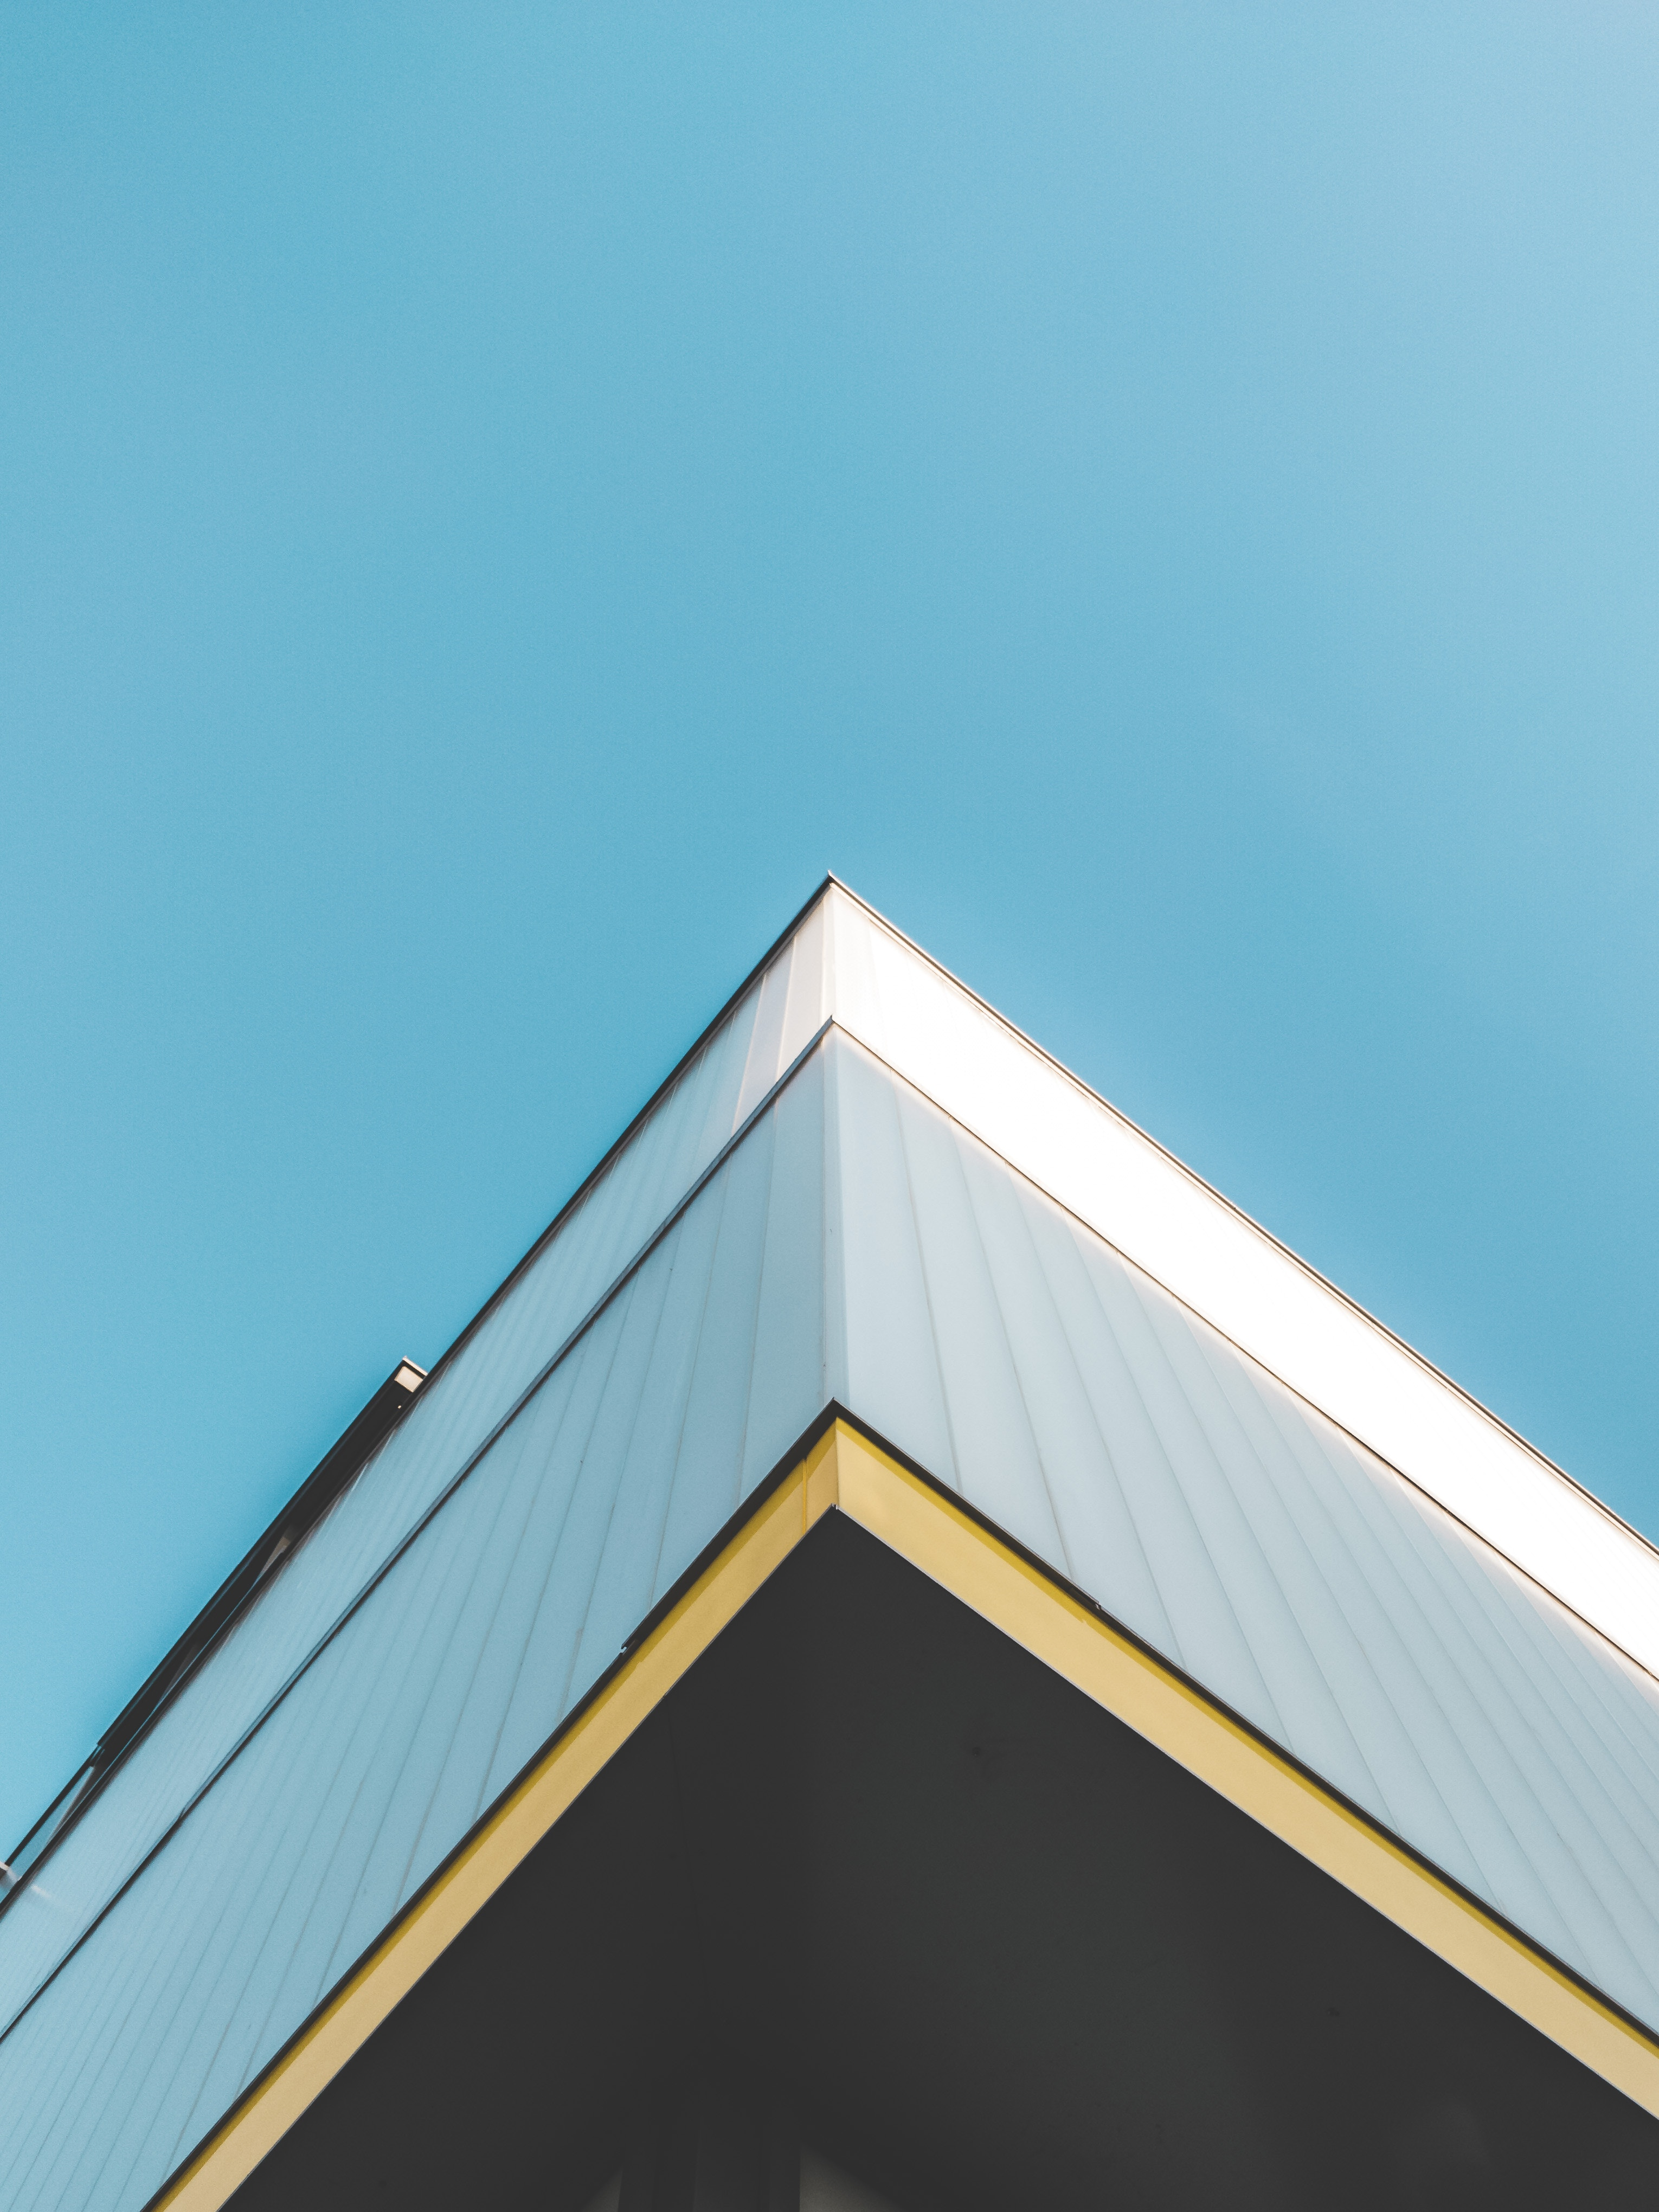 Flat Roofs The Practical Choice For Commercial Use Buildings